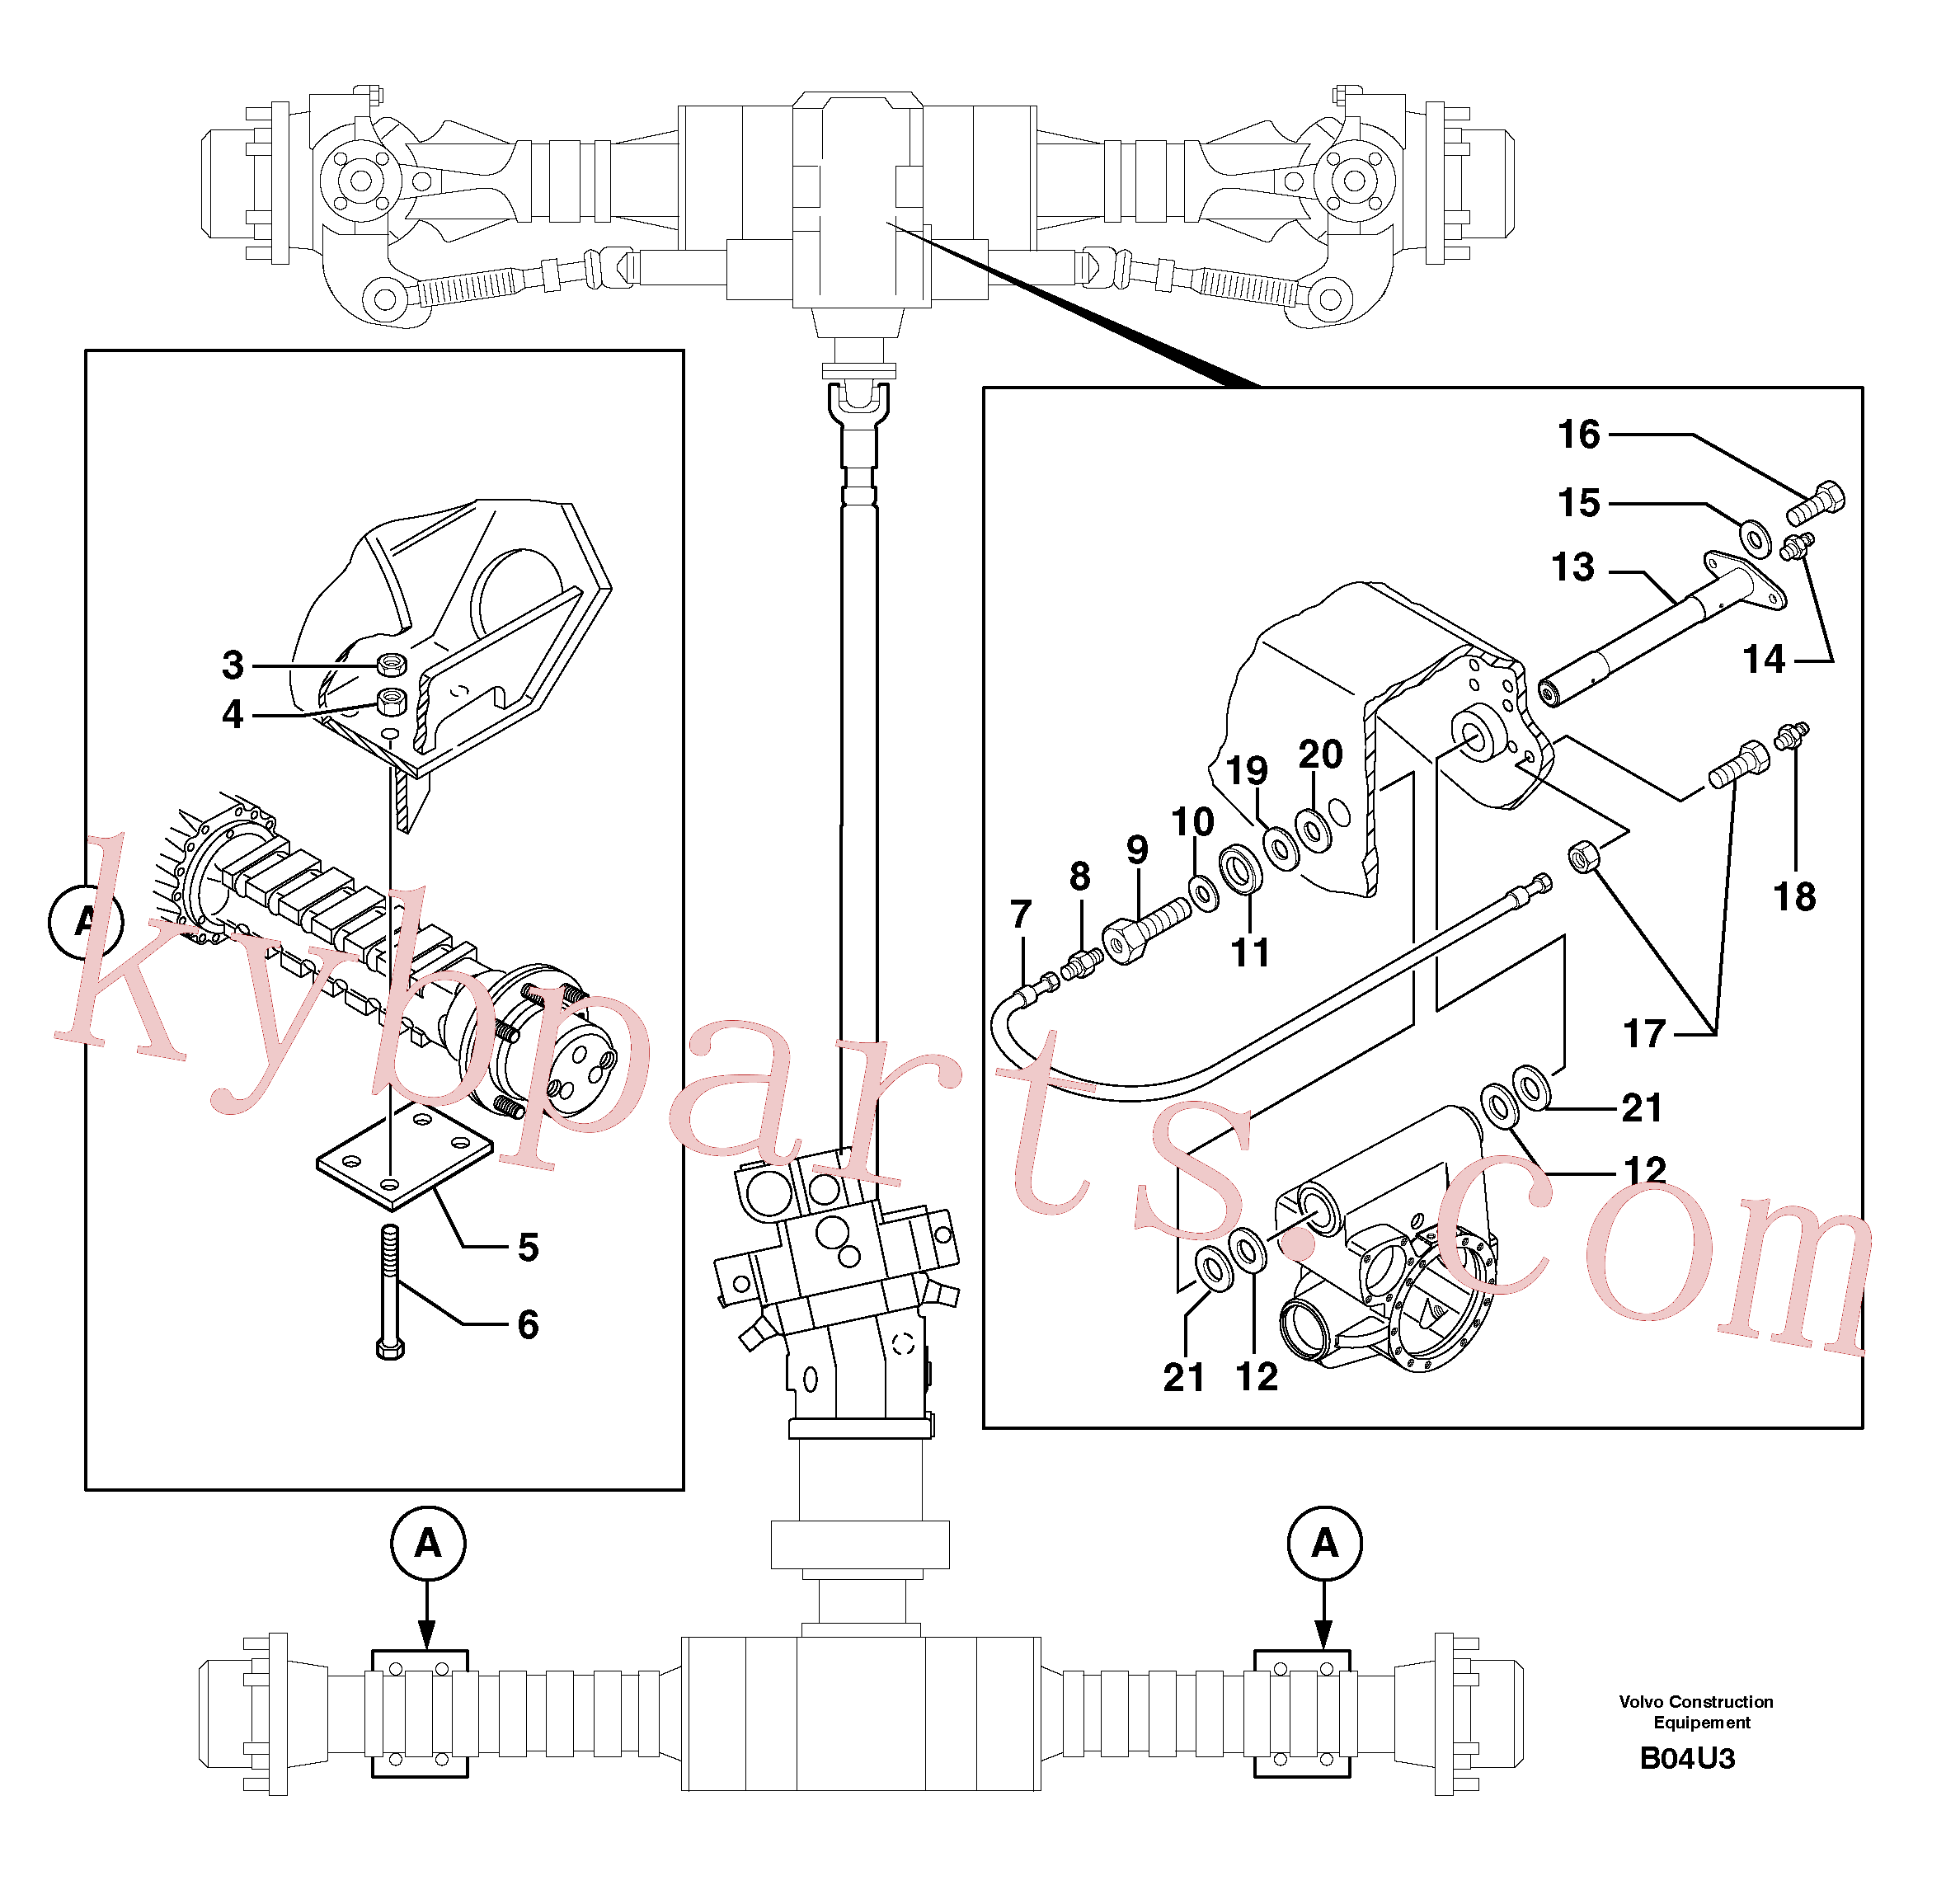 VOE982489 for Volvo Axle cradles and mountings(B04U3 assembly)